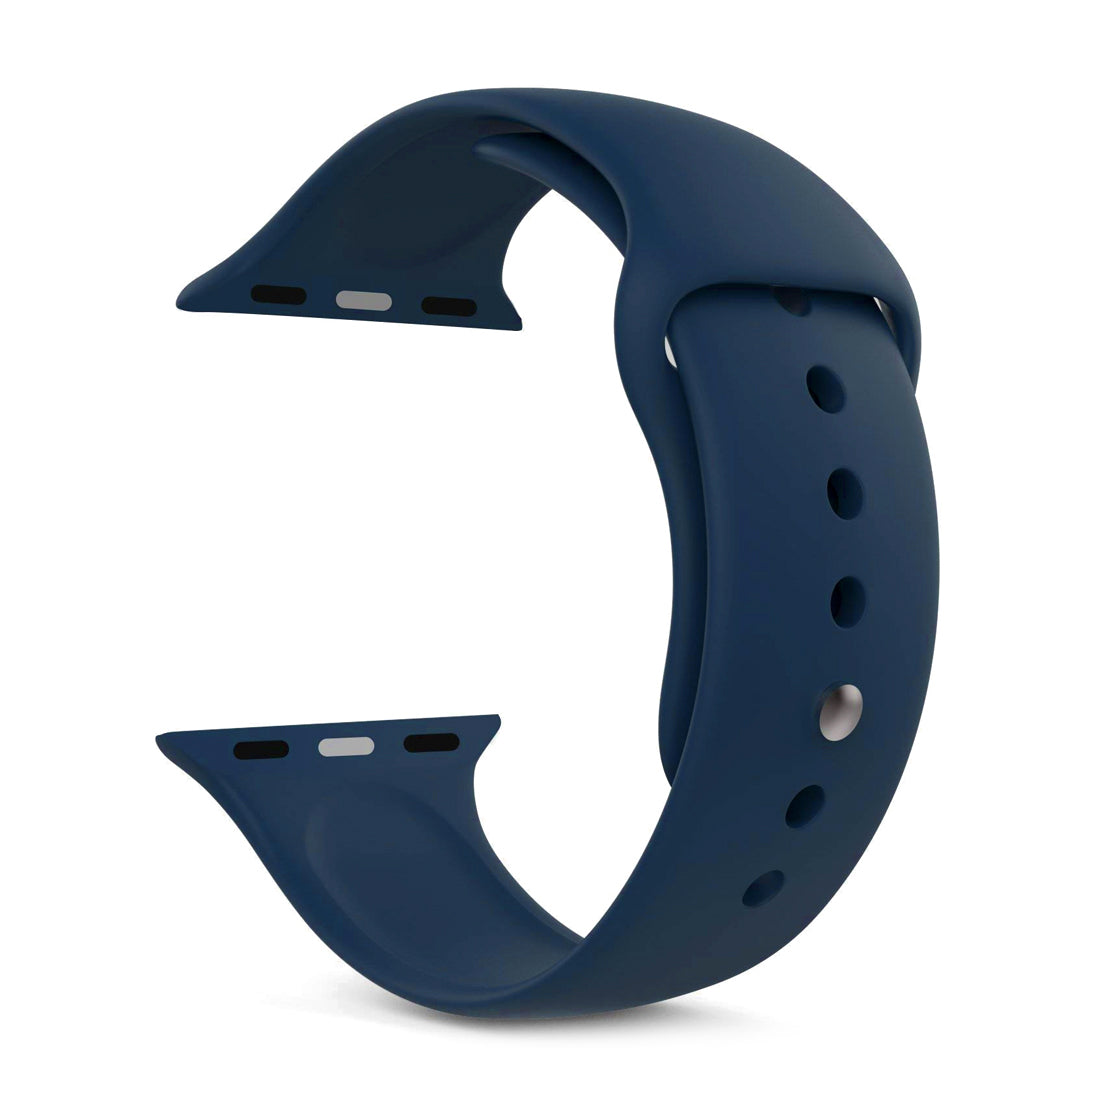 Silicone Sports Watch Strap for Apple Watch Series 5/4/3/2/1 (Ocean Blue)